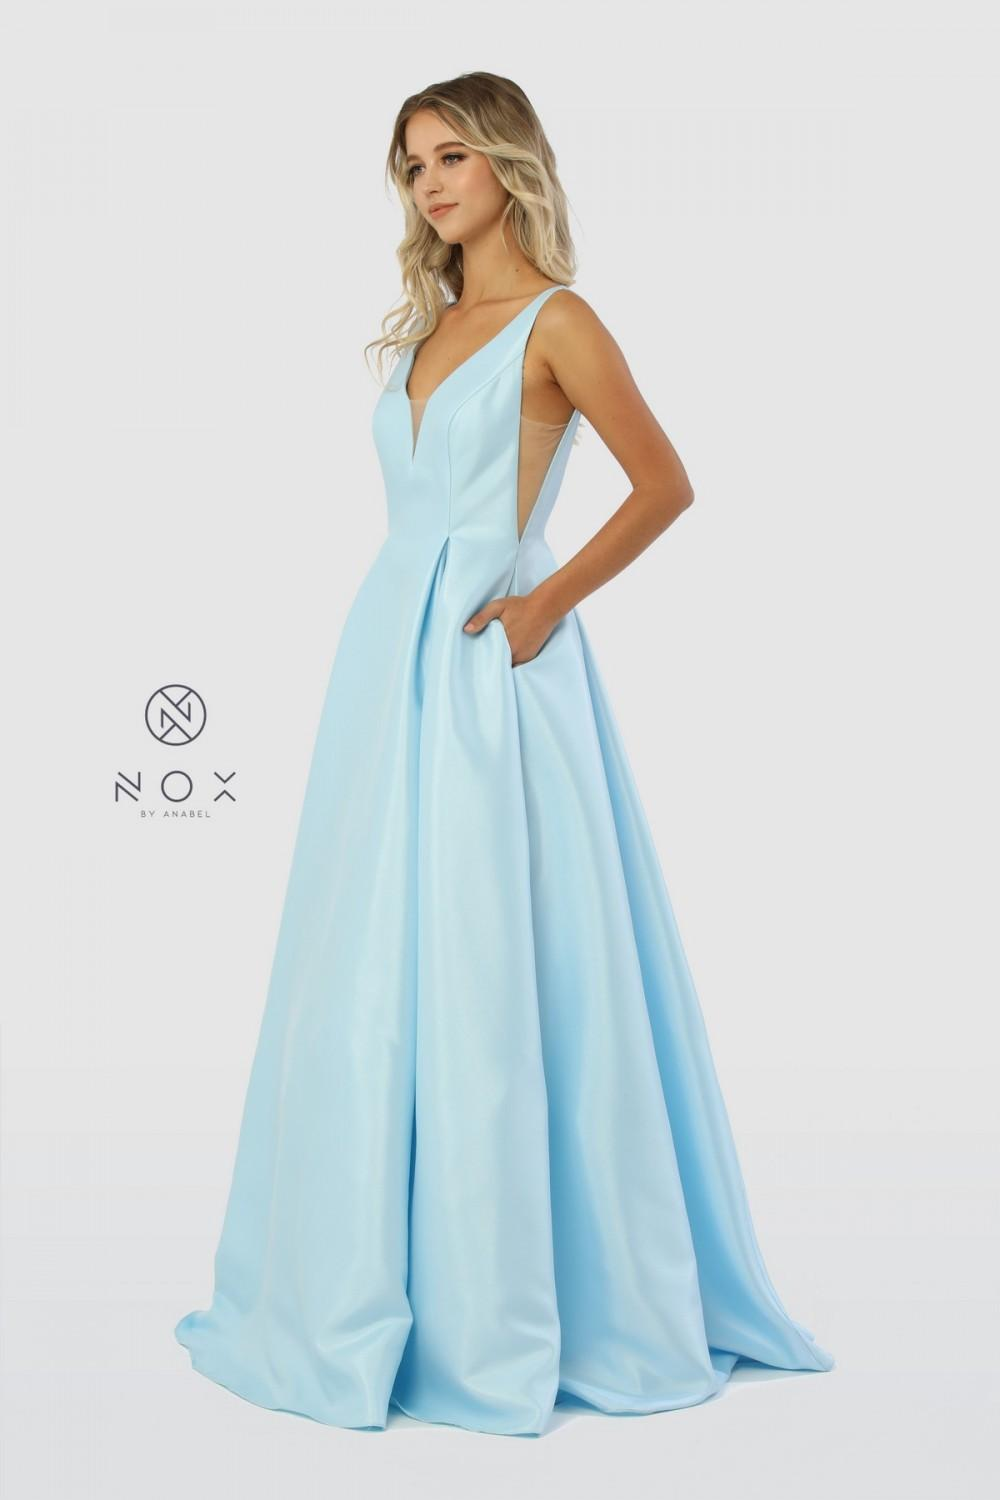 Nox N E156 - Satin V-Neck Ballgown with Pleated Skirt Sheer Cut-out Sides Open Back & Pockets - Diggz Prom